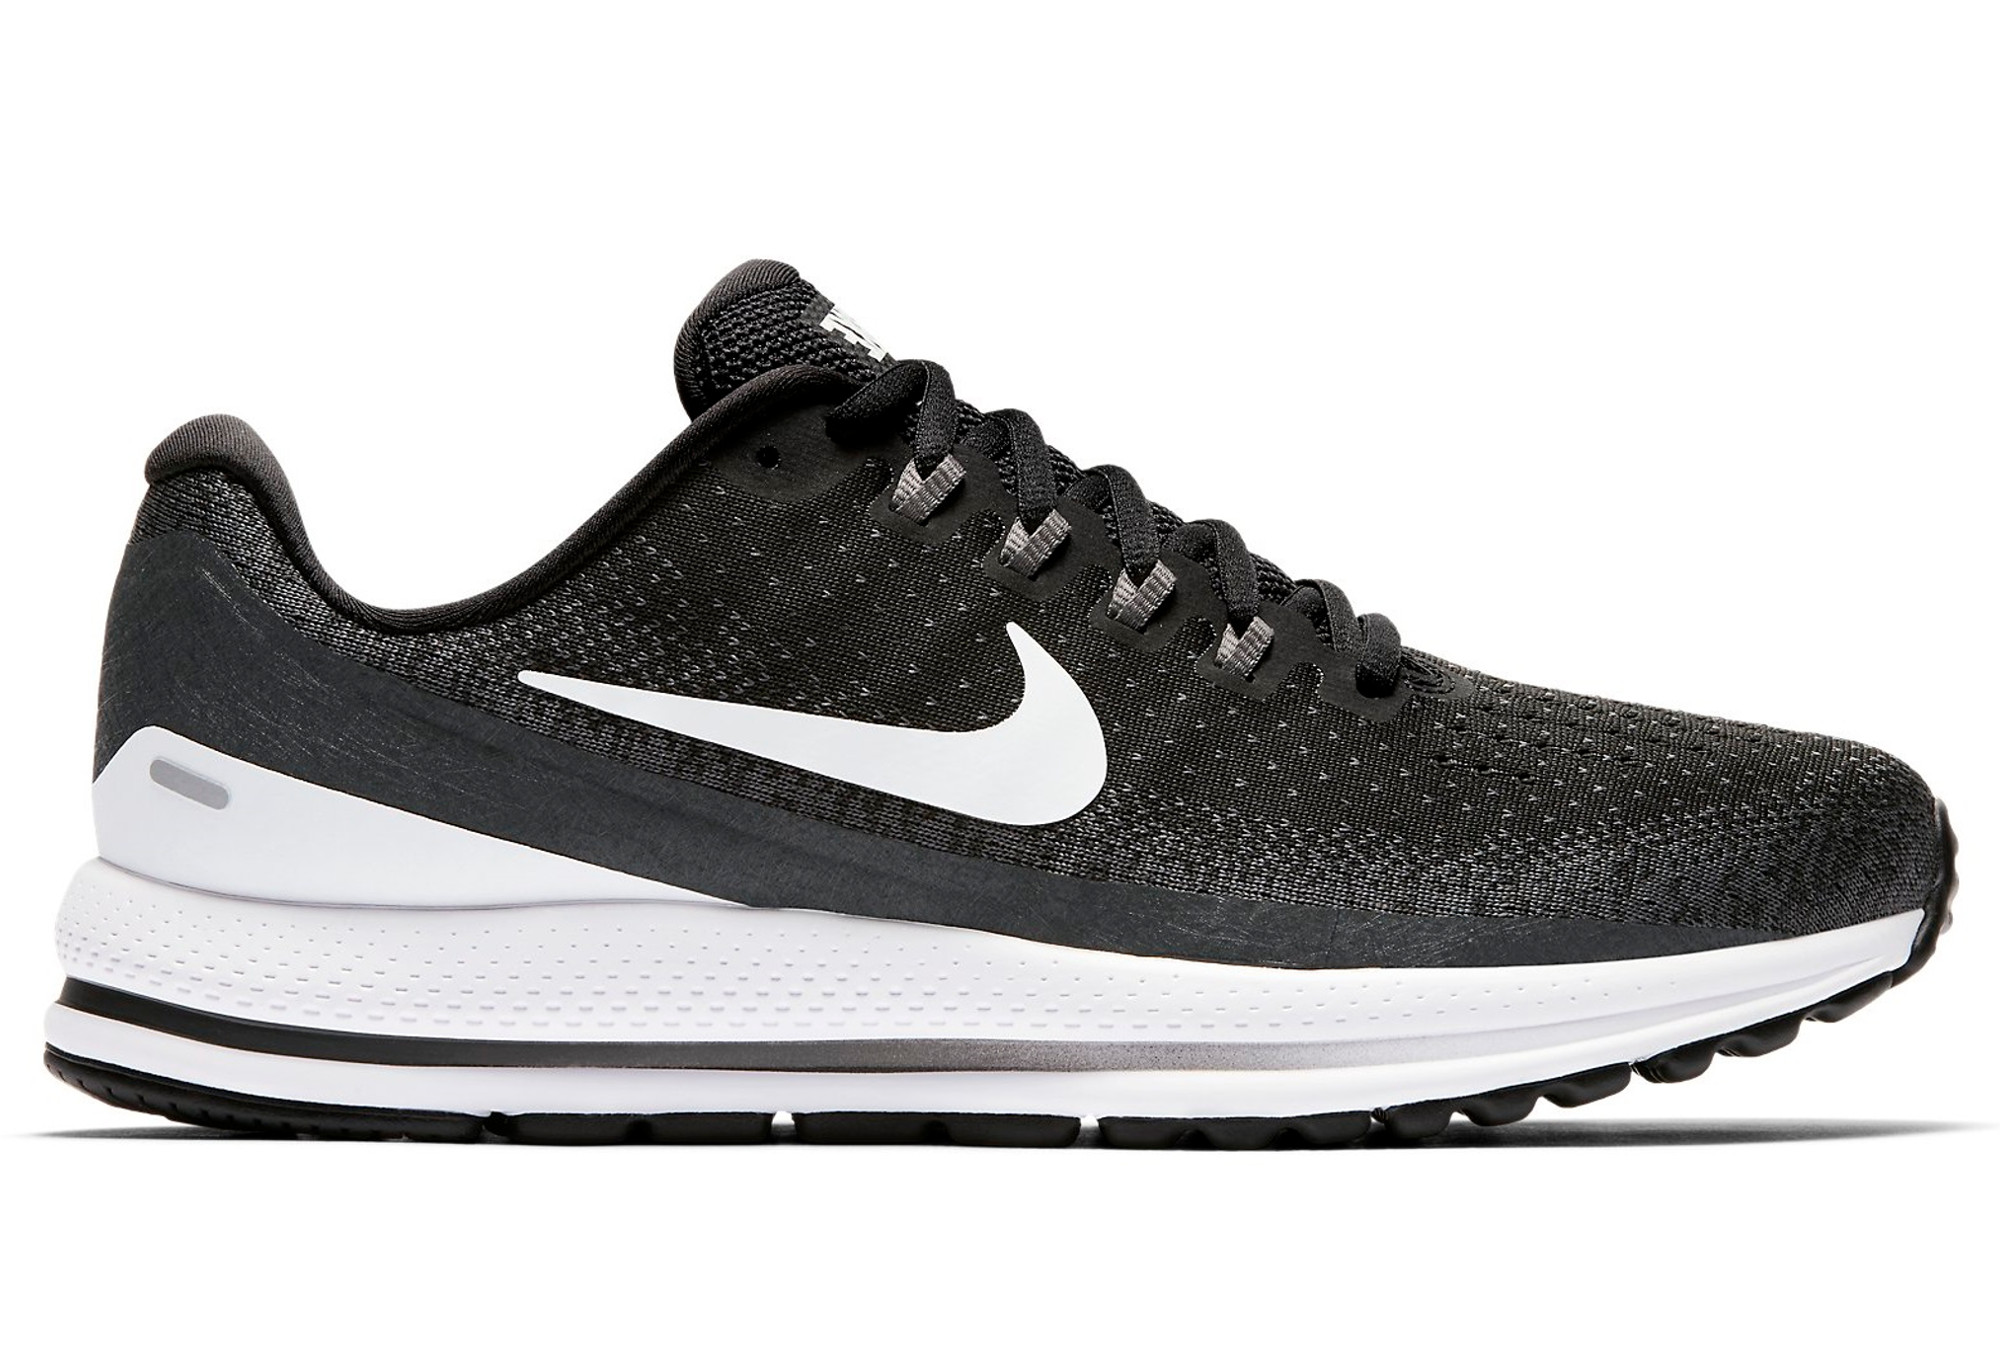 a741d41614282d Nike Air Zoom Vomero 13 Black White Men